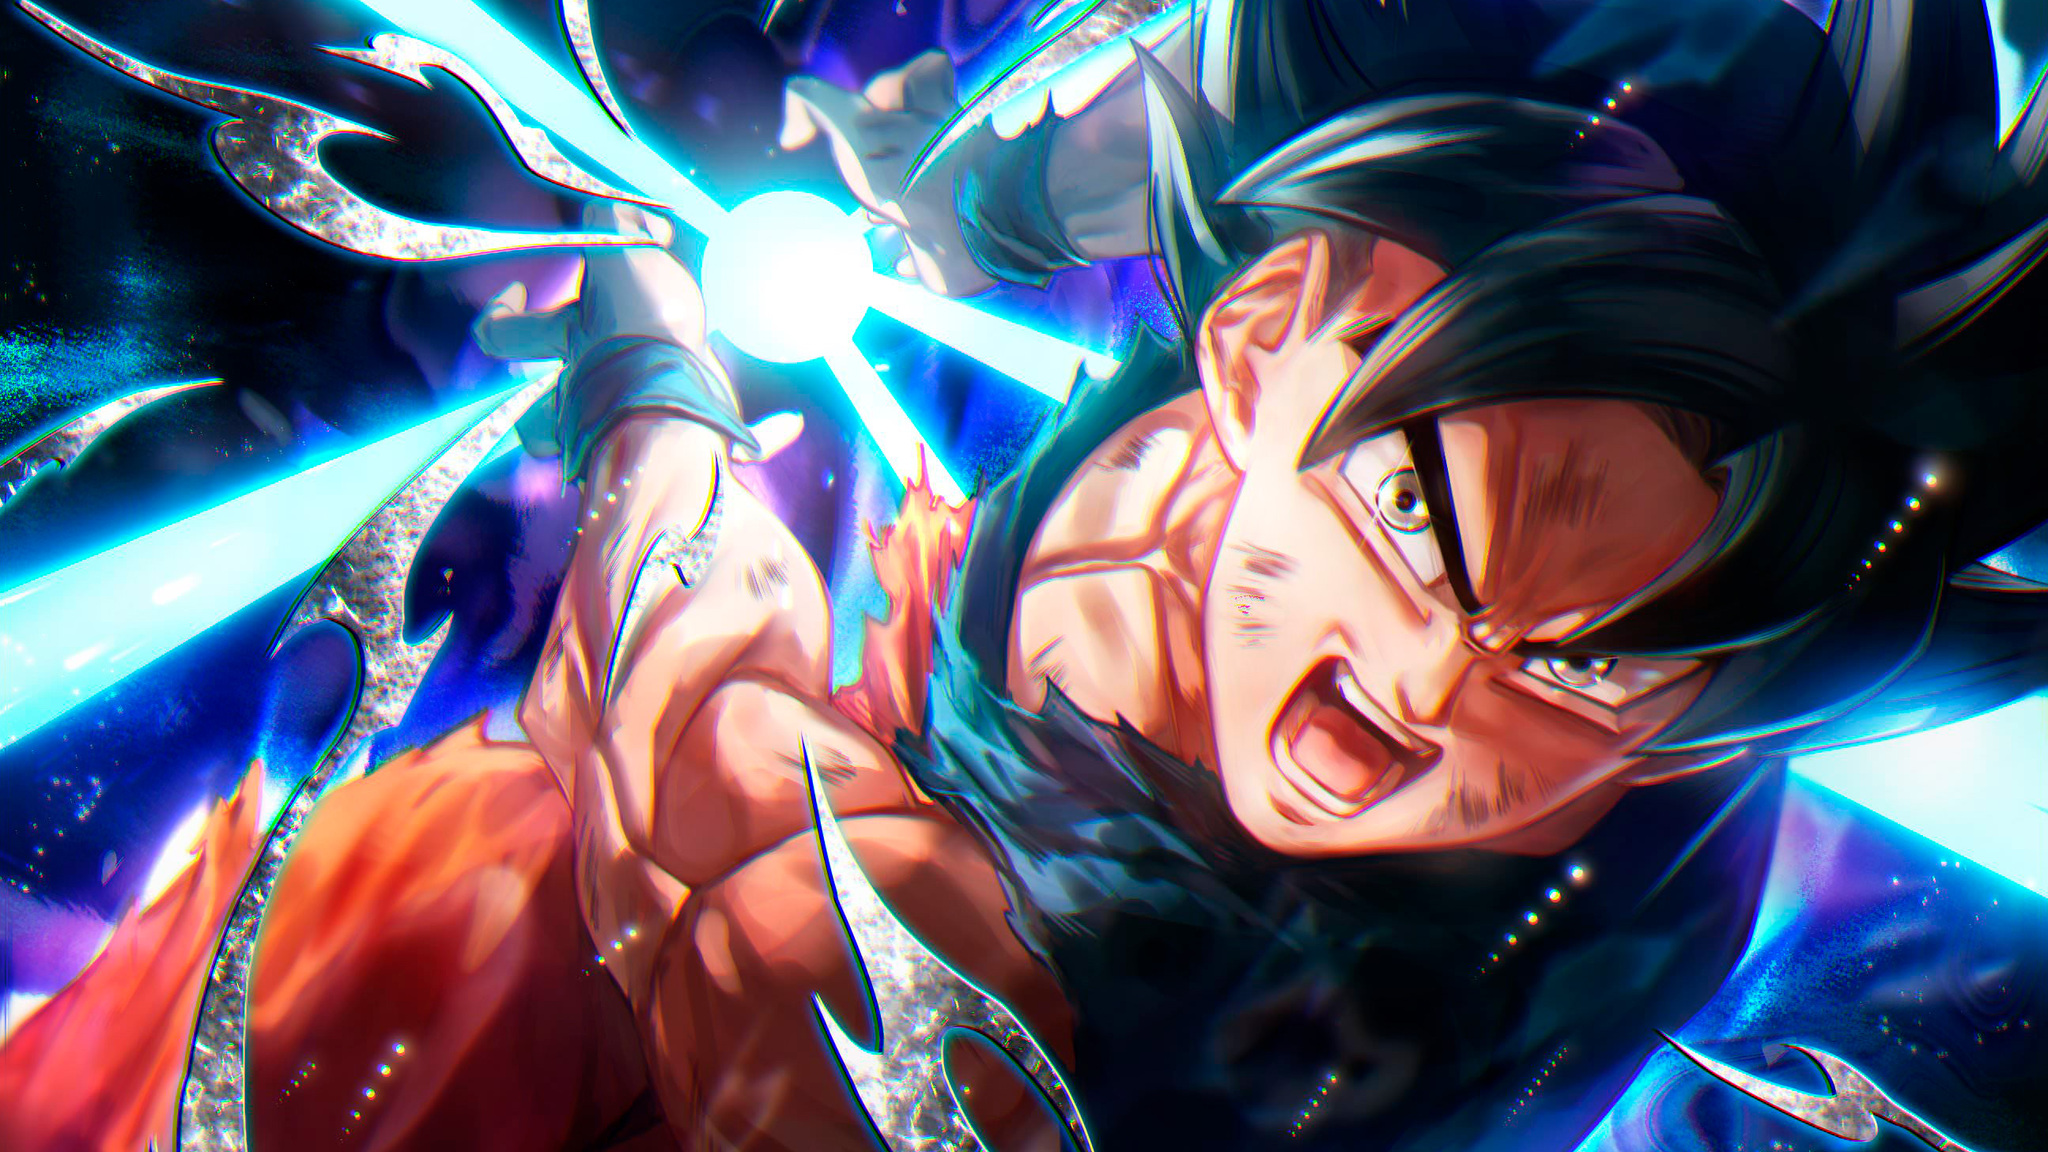 2048x1152 Goku In Dragon Ball Super Anime 4k 2048x1152 Resolution HD 4k Wallpapers, Images ...